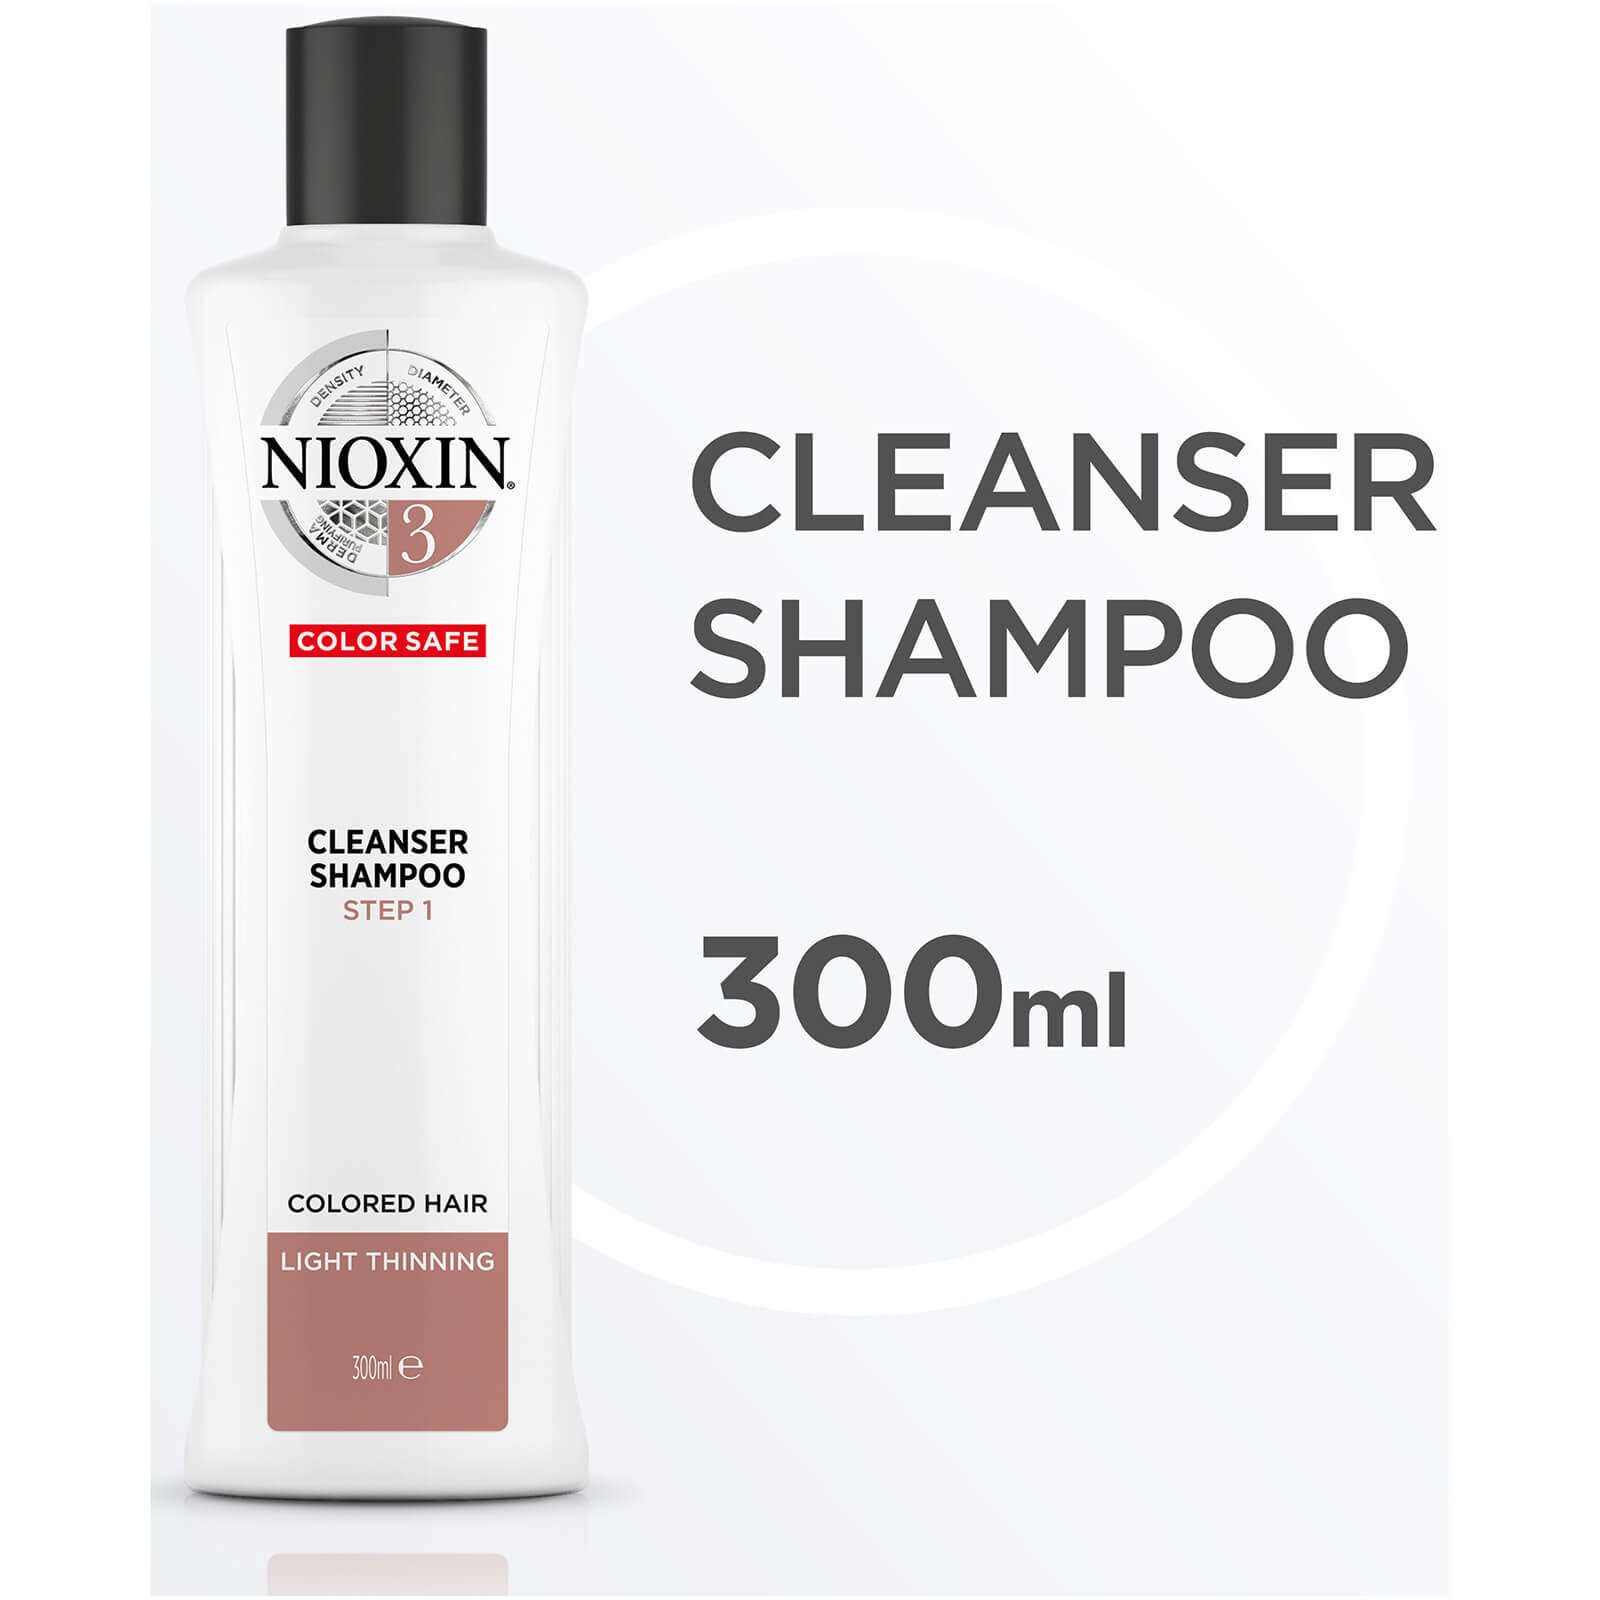 NIOXIN System 3 Cleanser Shampoo for Coloured Hair with Light Thinning 300ml